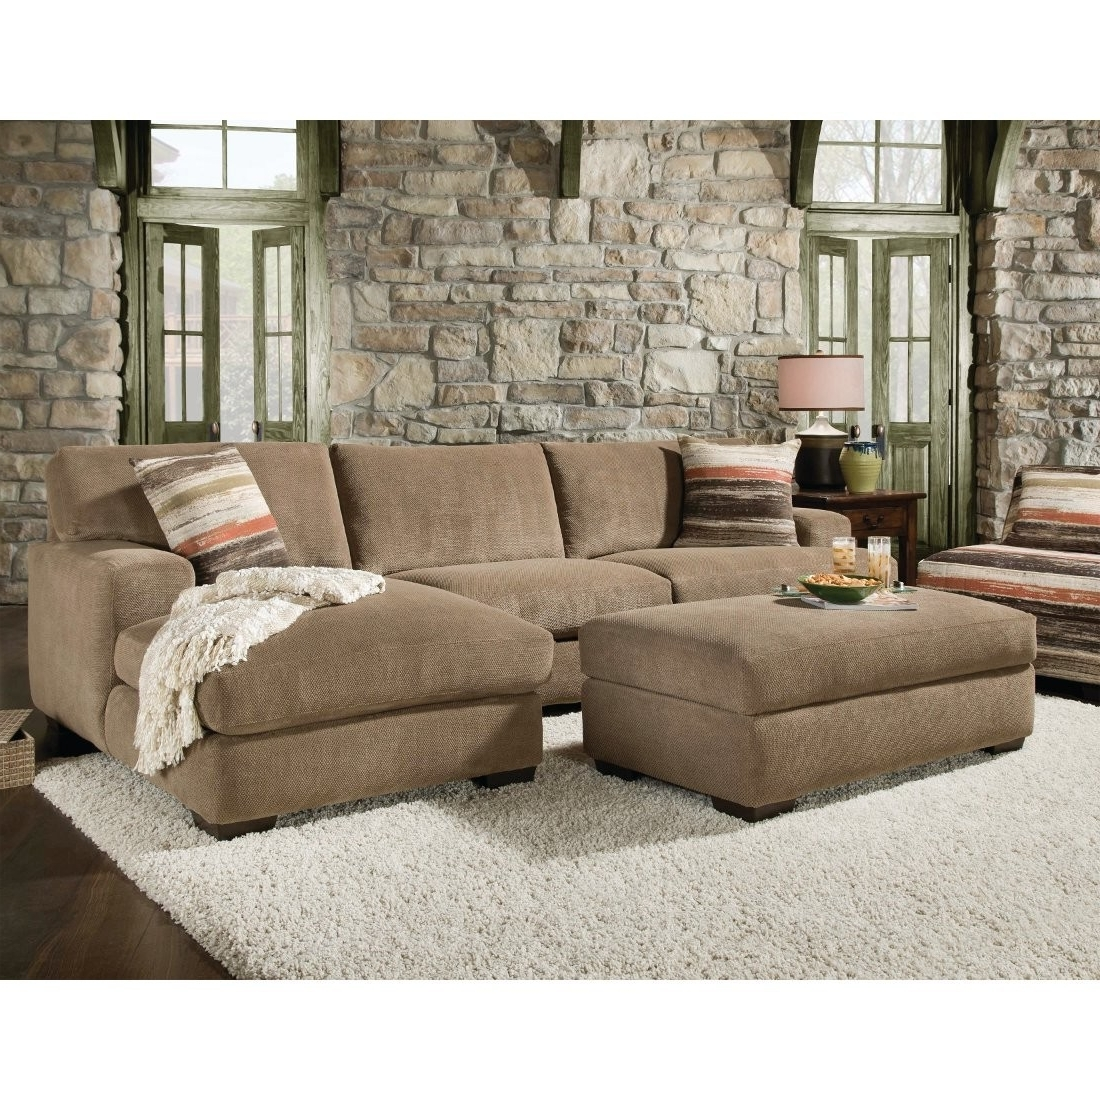 Most Popular Sectional Couches With Chaise With Regard To Beautiful Sectional Sofa With Chaise And Ottoman Pictures (View 5 of 15)